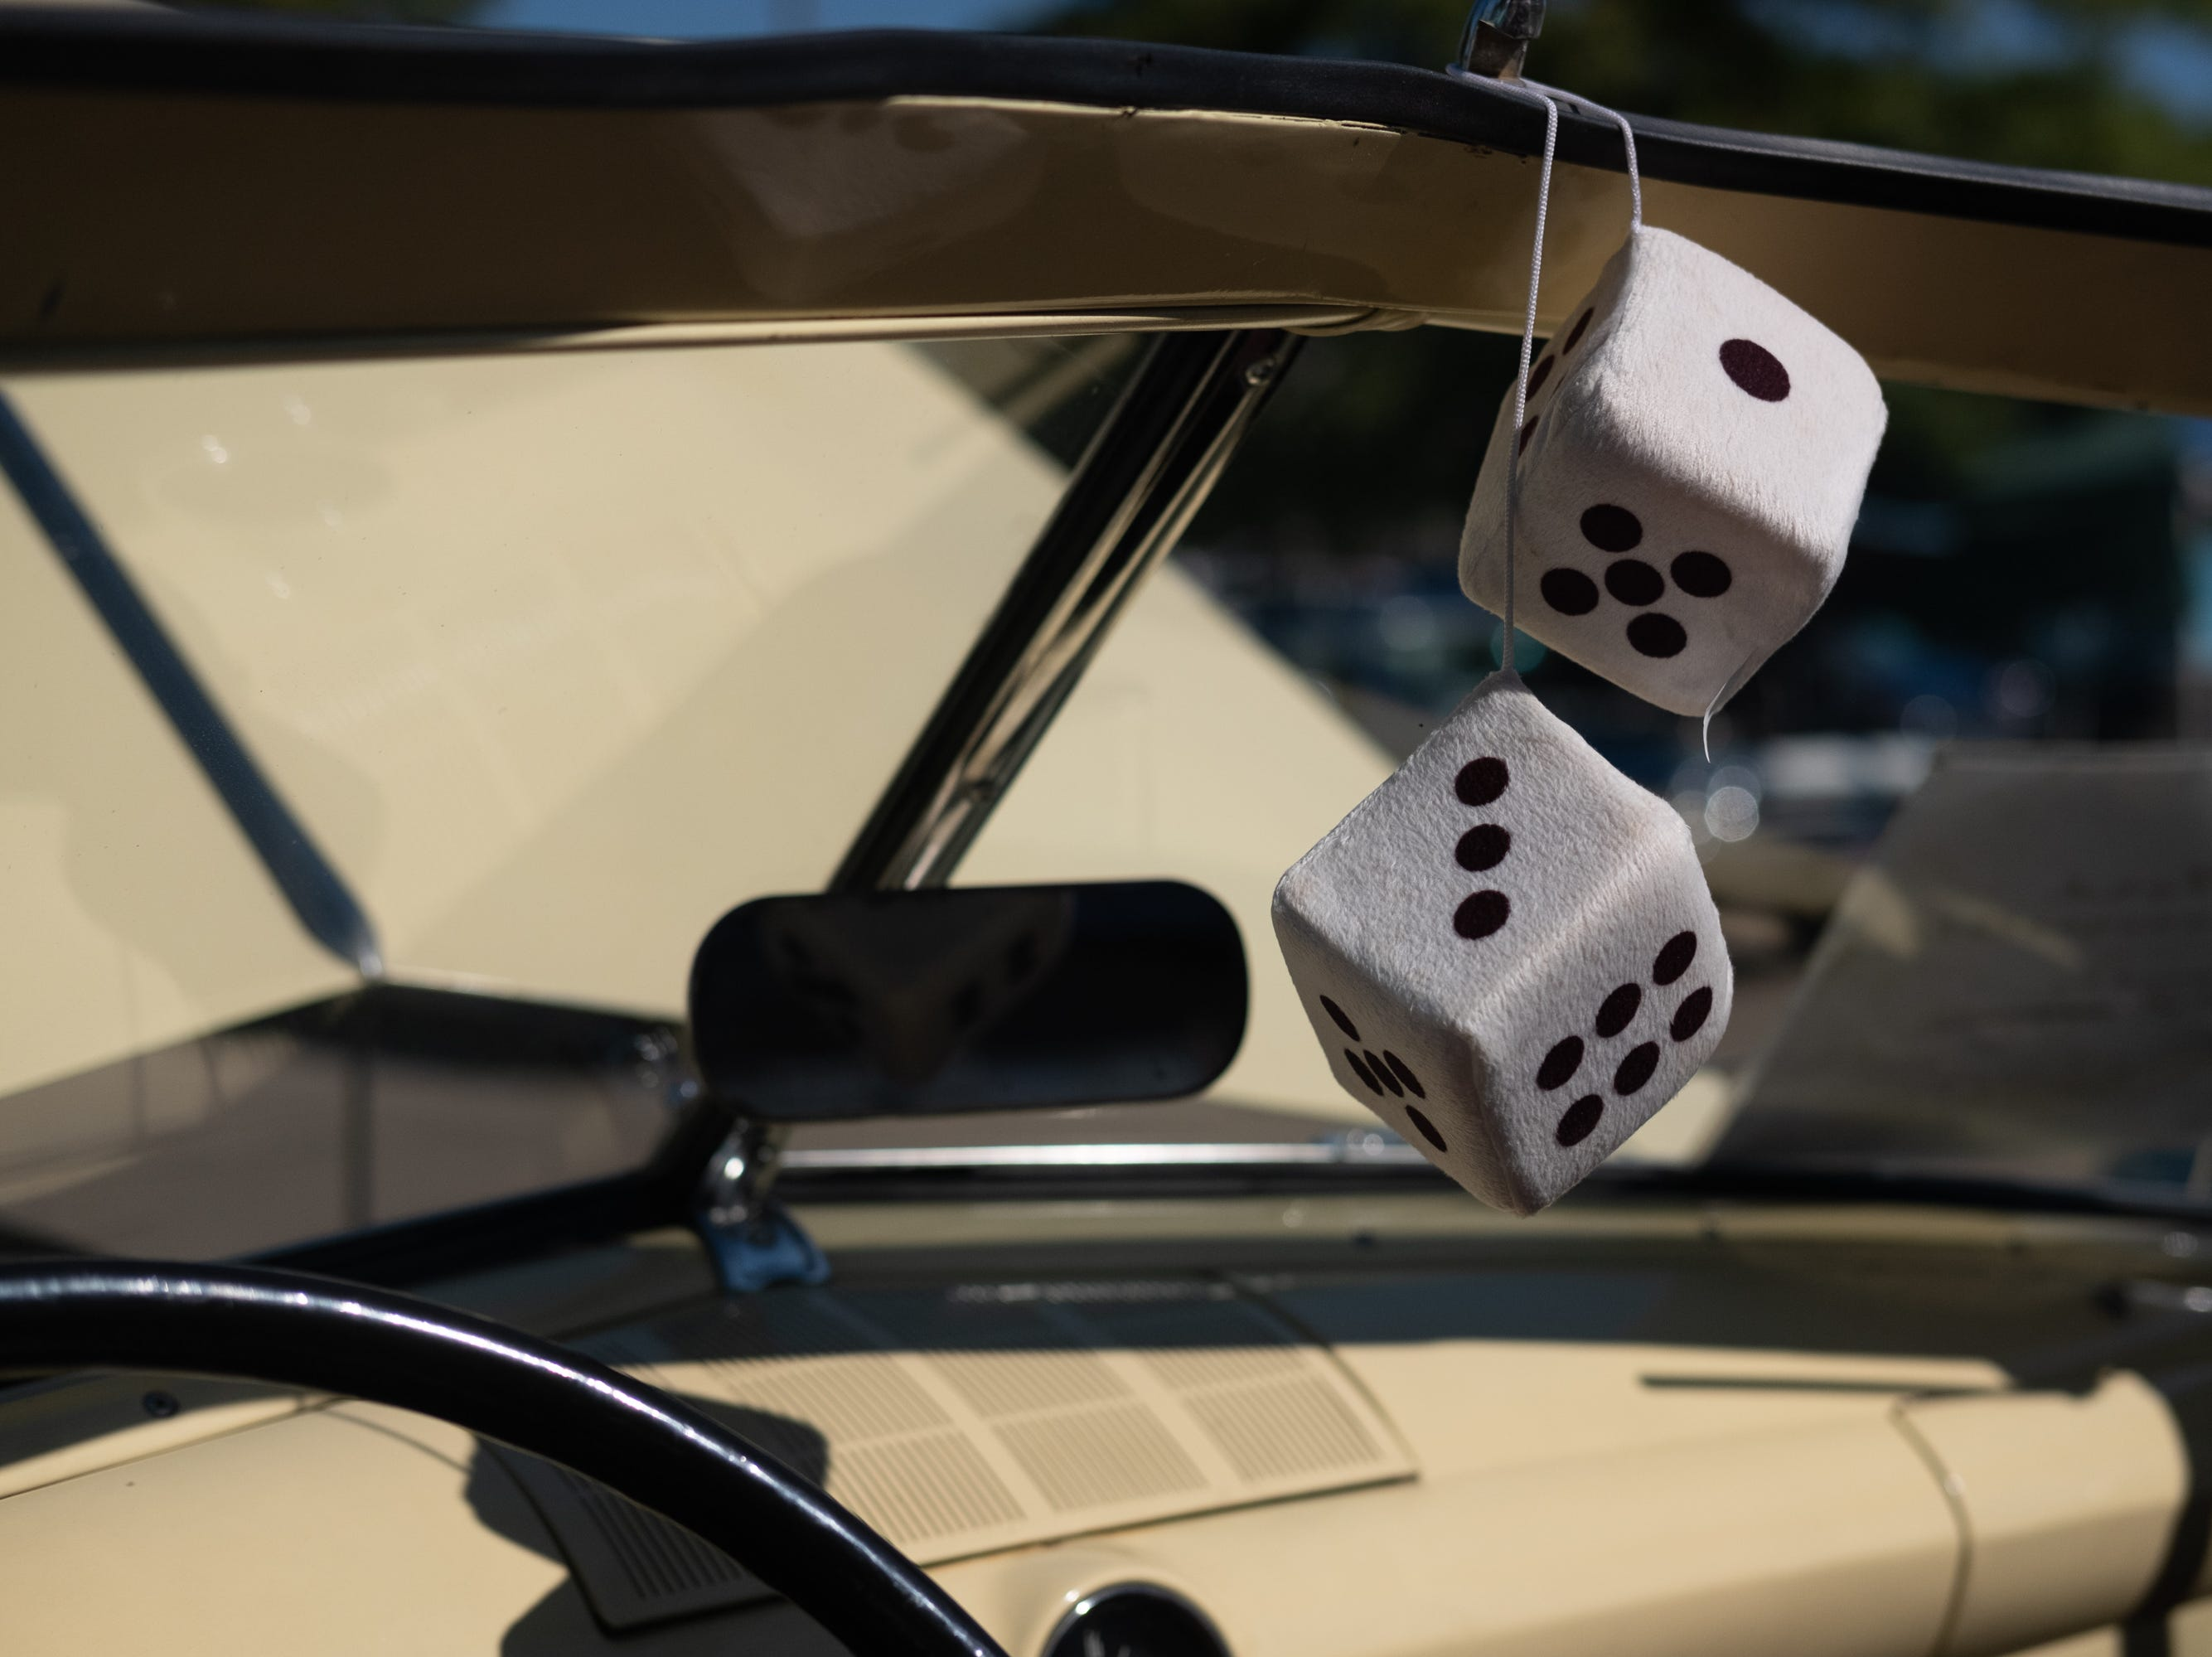 A pair of plush dice hang from a car at the Collierville Classic Car Show on Sept. 15, 2018.